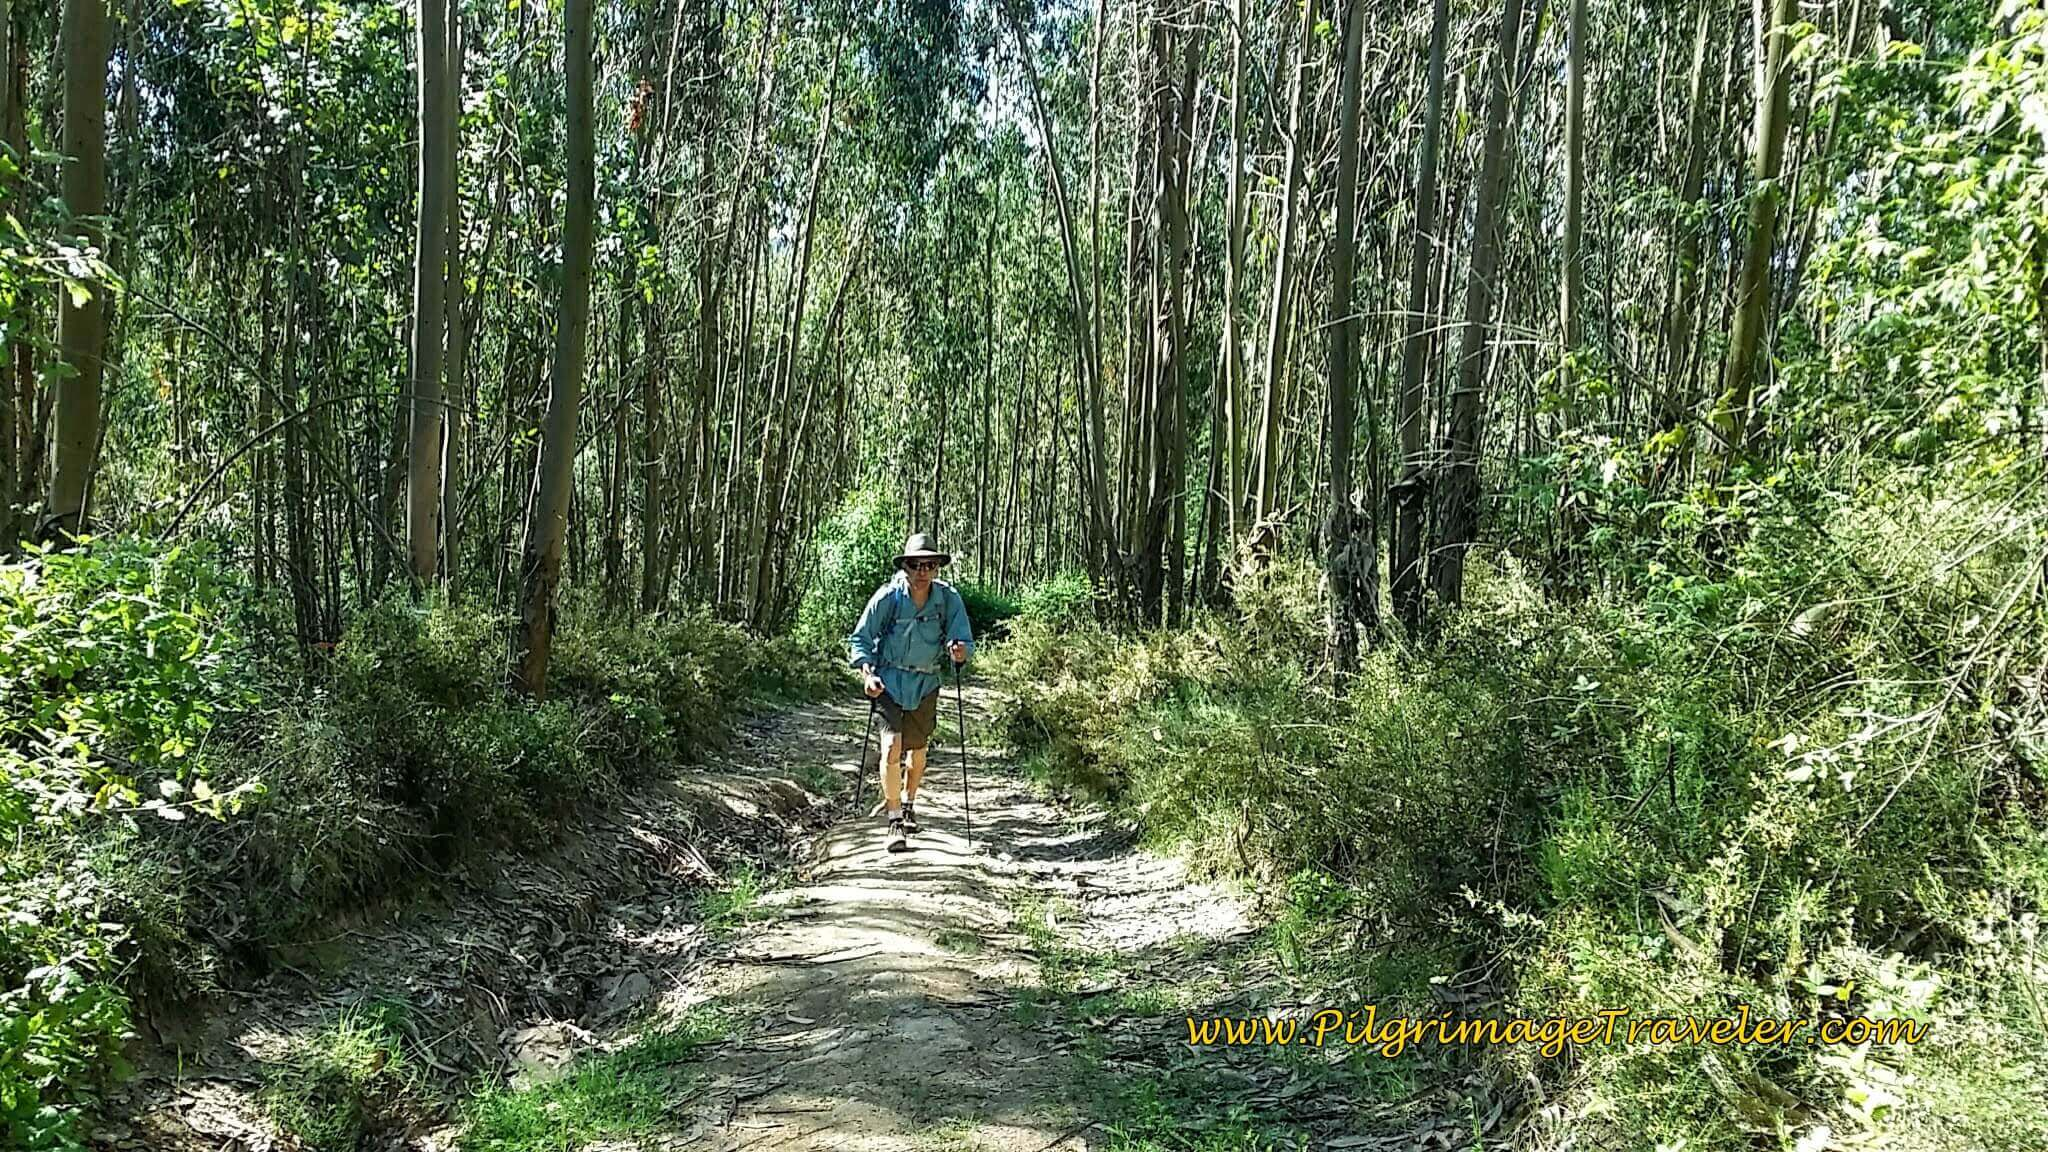 Climbing Through the Eucalyptus Forest